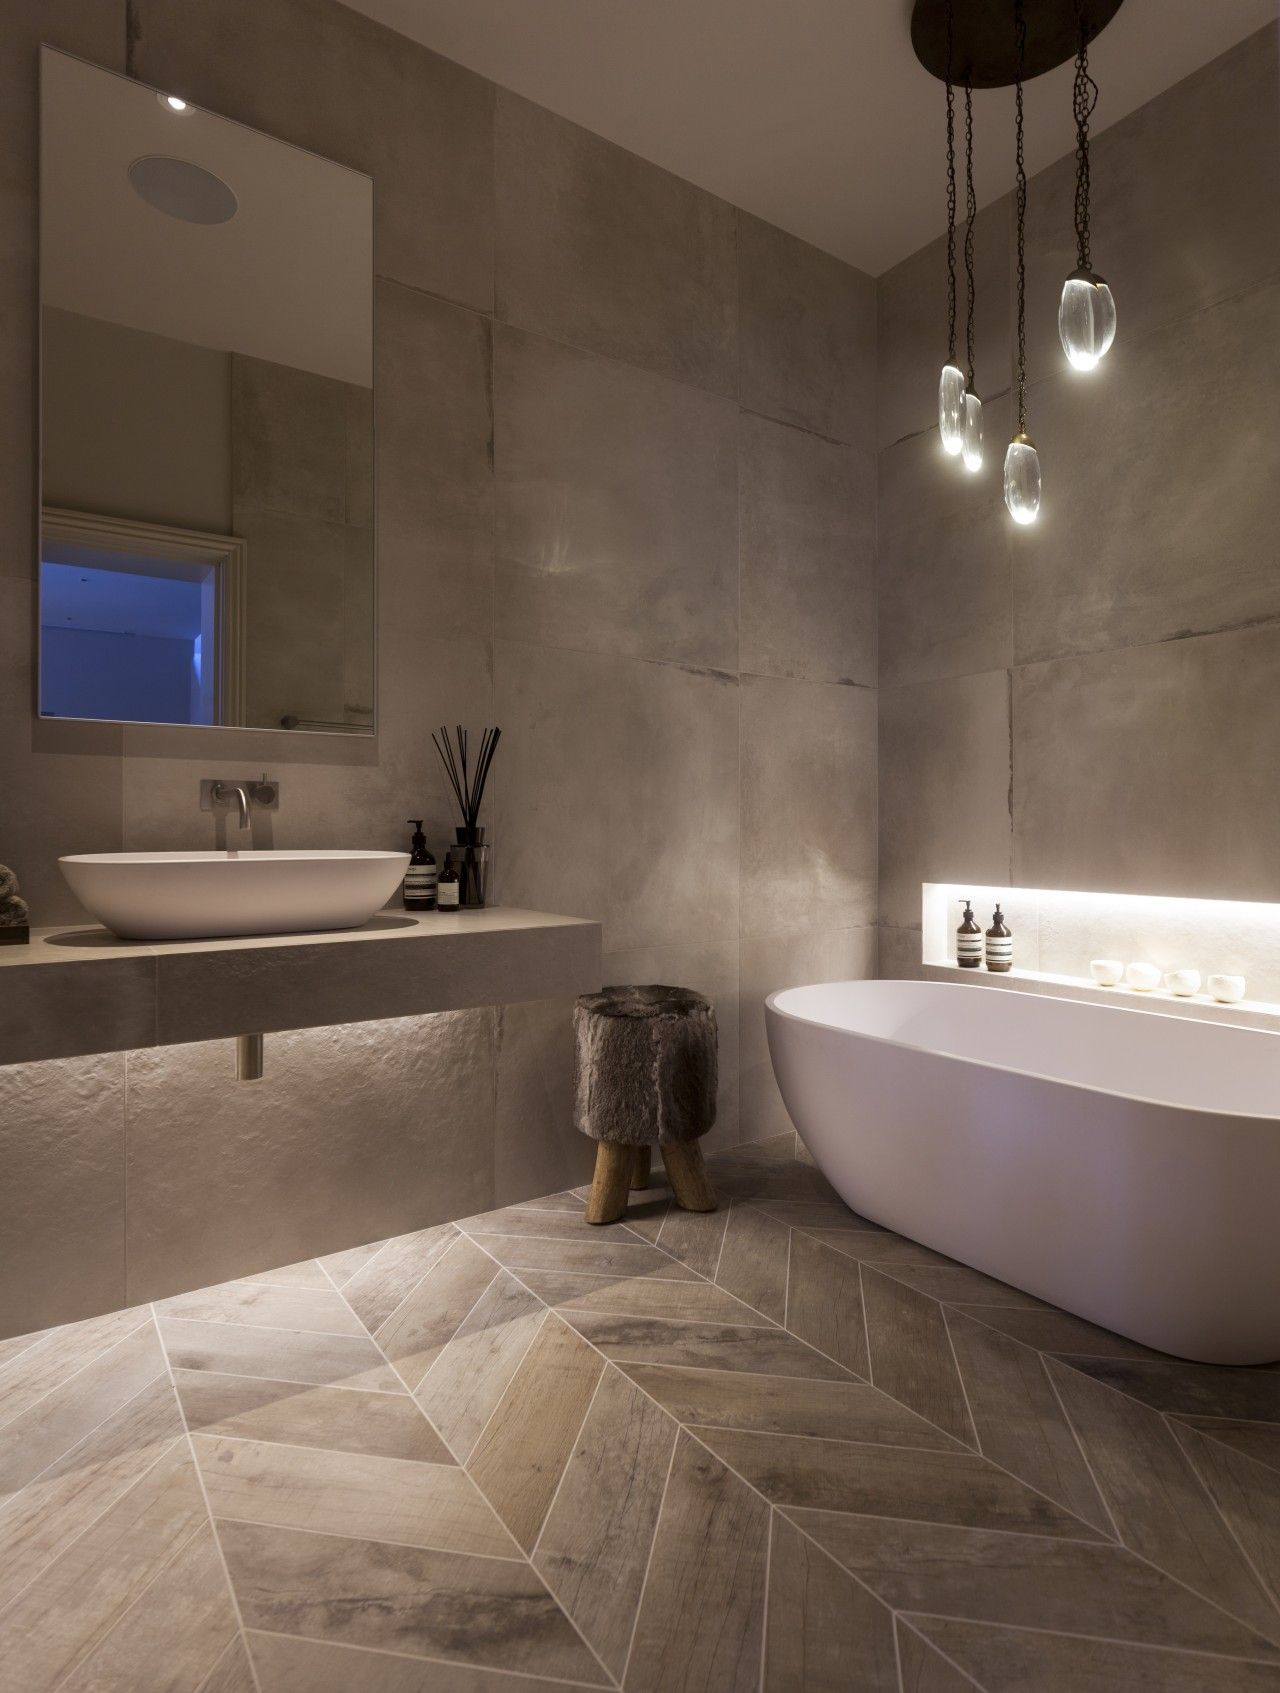 Private residence bath room janey butler interiors for Room design with bathroom